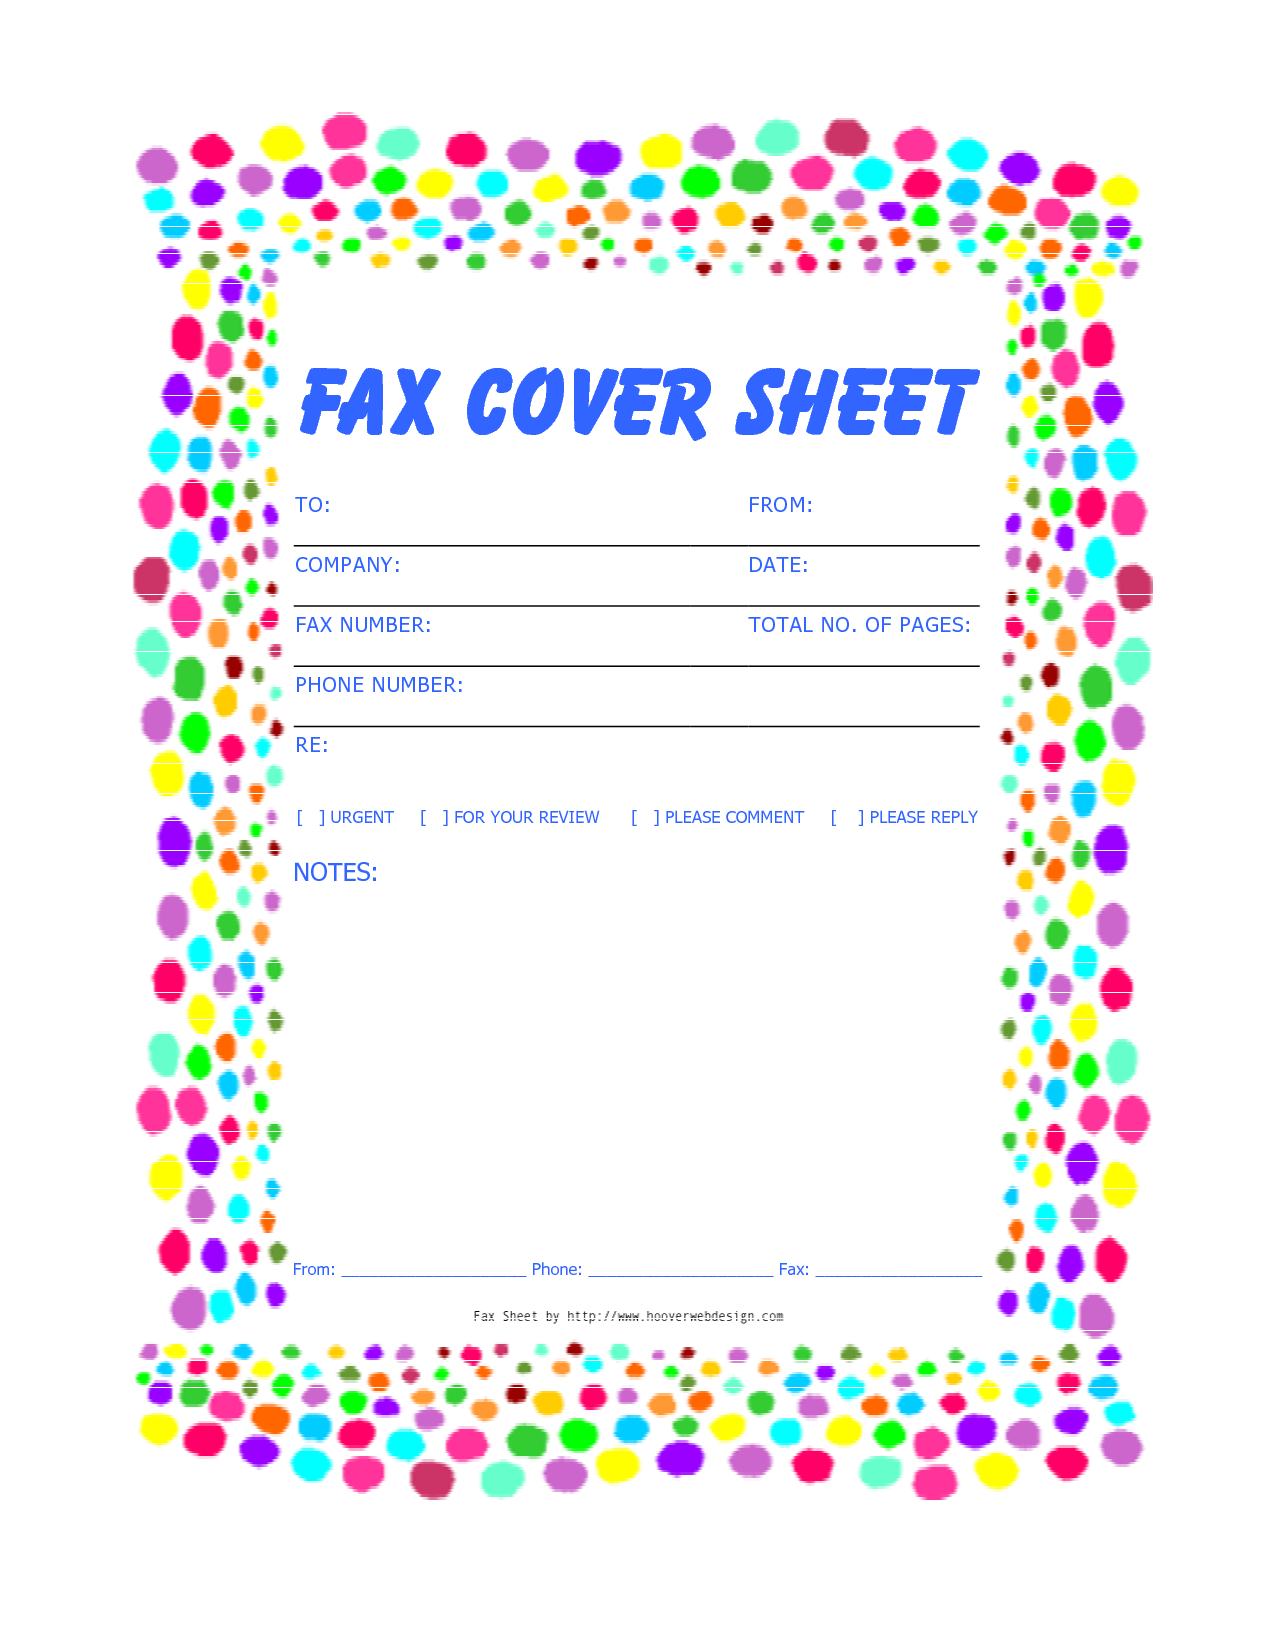 Free Printable Fax Cover Sheets | Free Printable Fax Cover Sheets Templates  Free Downloadable Fax Cover Sheet